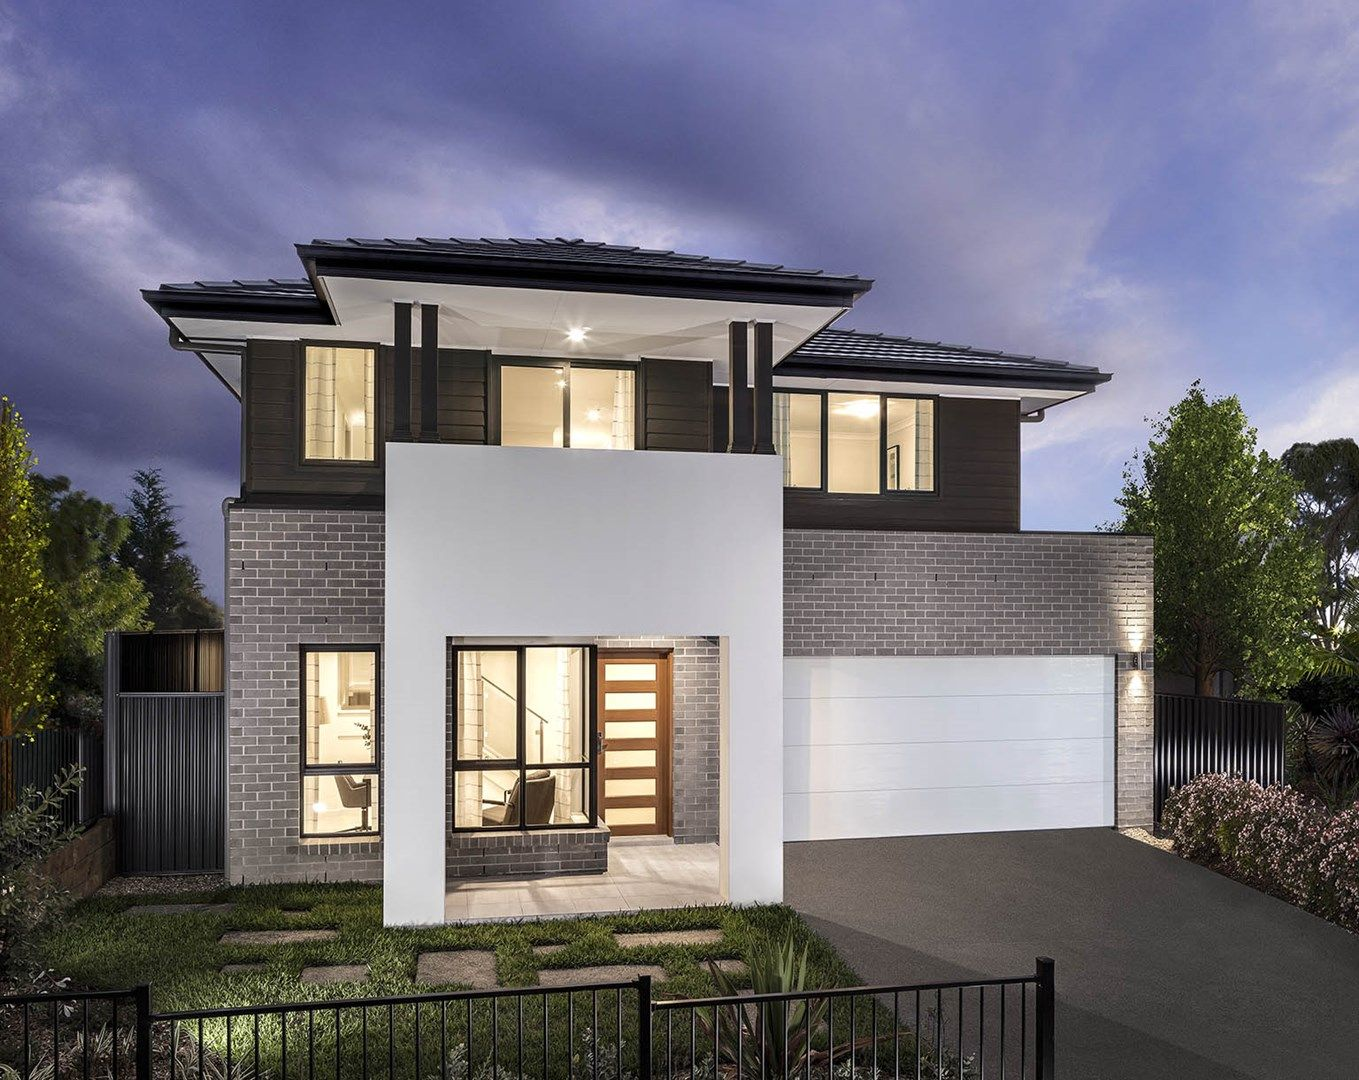 Lot 5099 Proposed Road (Emerald Hills), Emerald Hill NSW 2380, Image 0